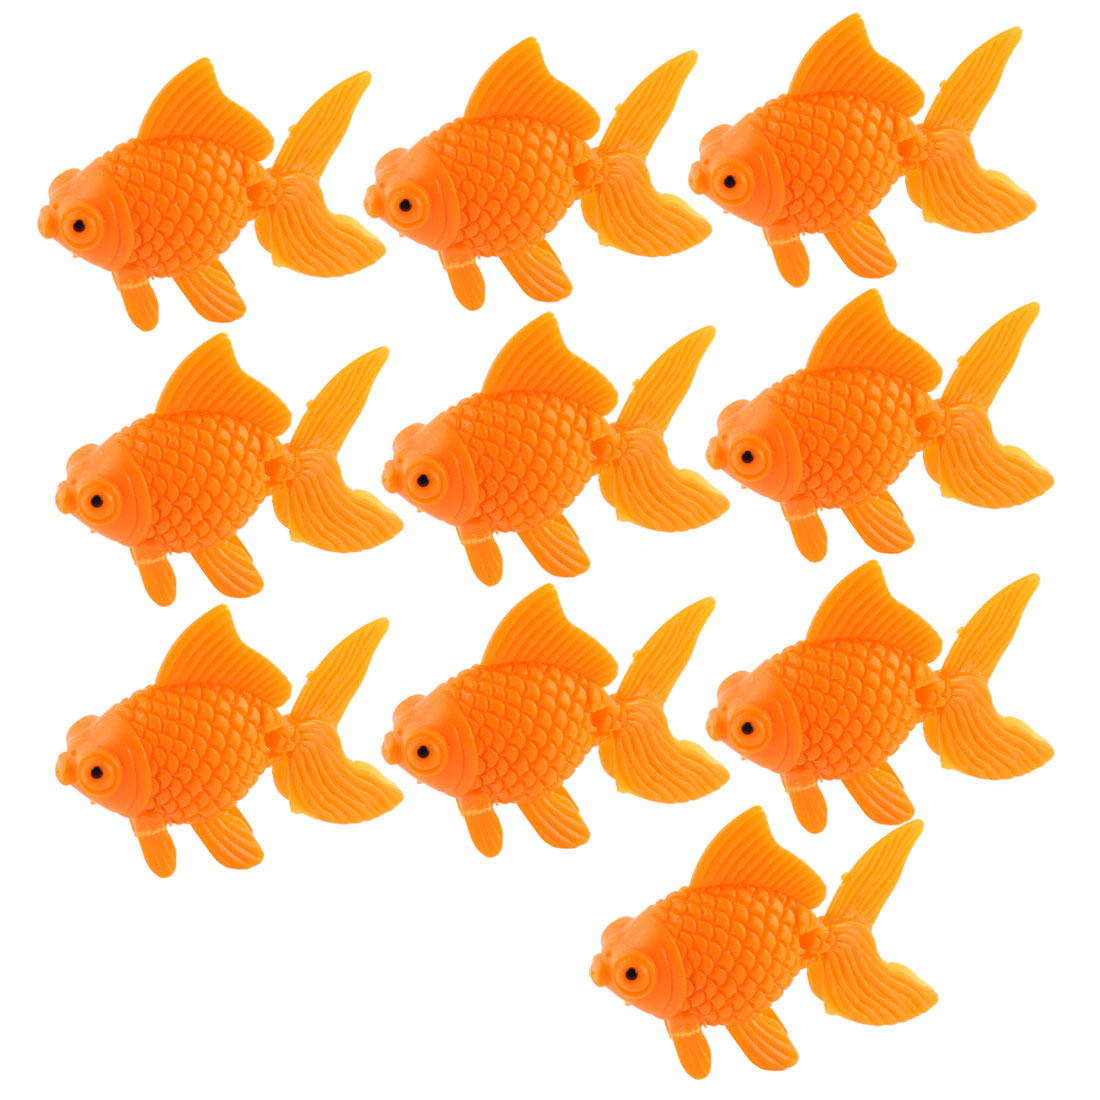 Aquarium Orange Plastic Goldfish Ornament Fish Tank Decoration 10pcs